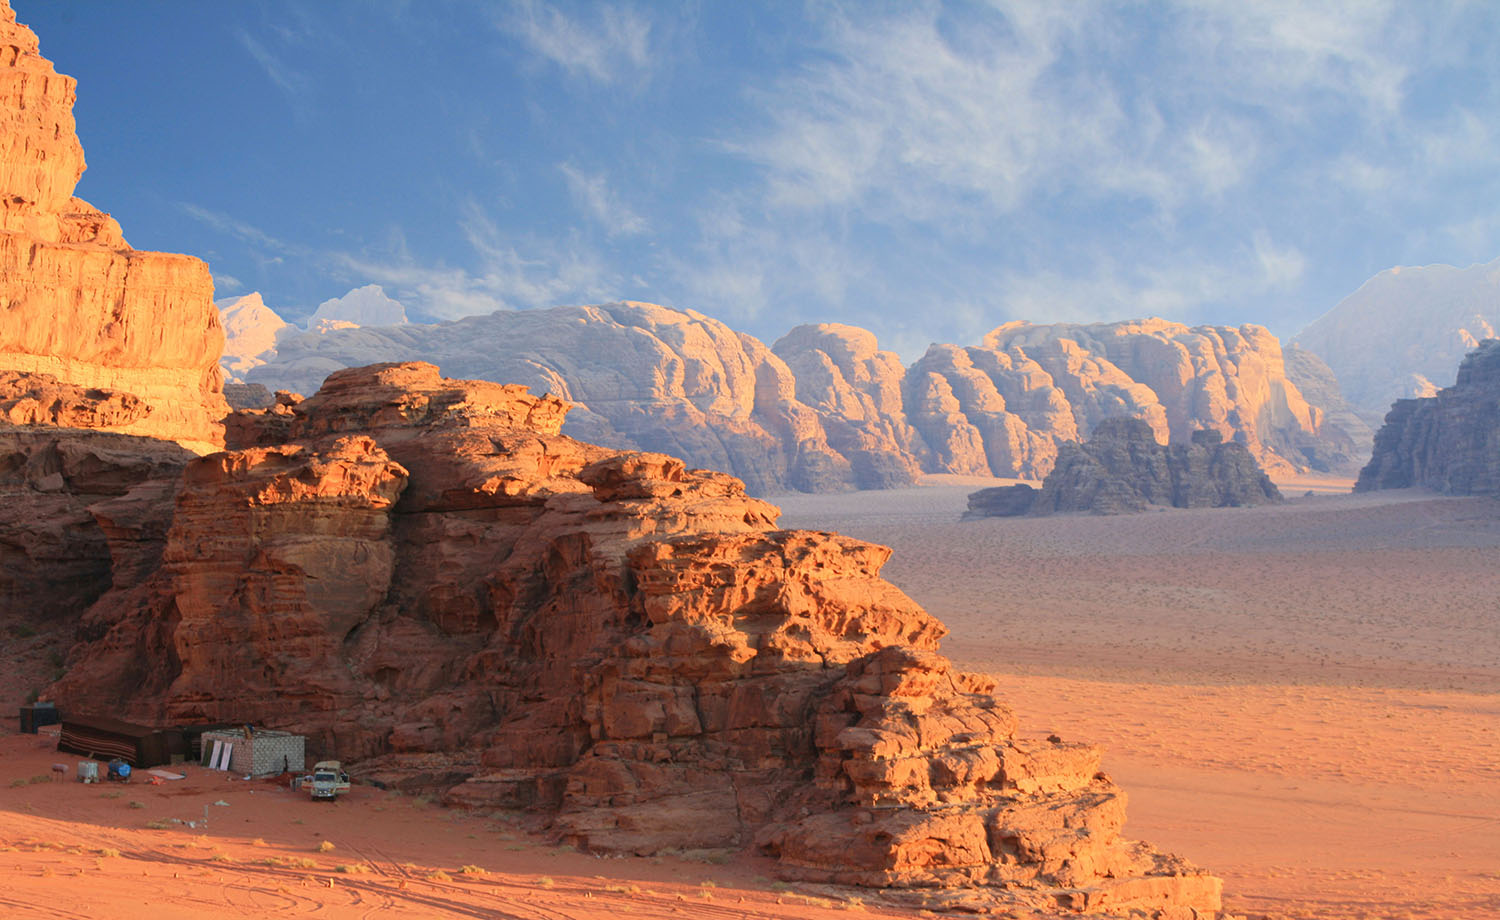 Jordan - Wadi Rum - Wadi Rum Mountains